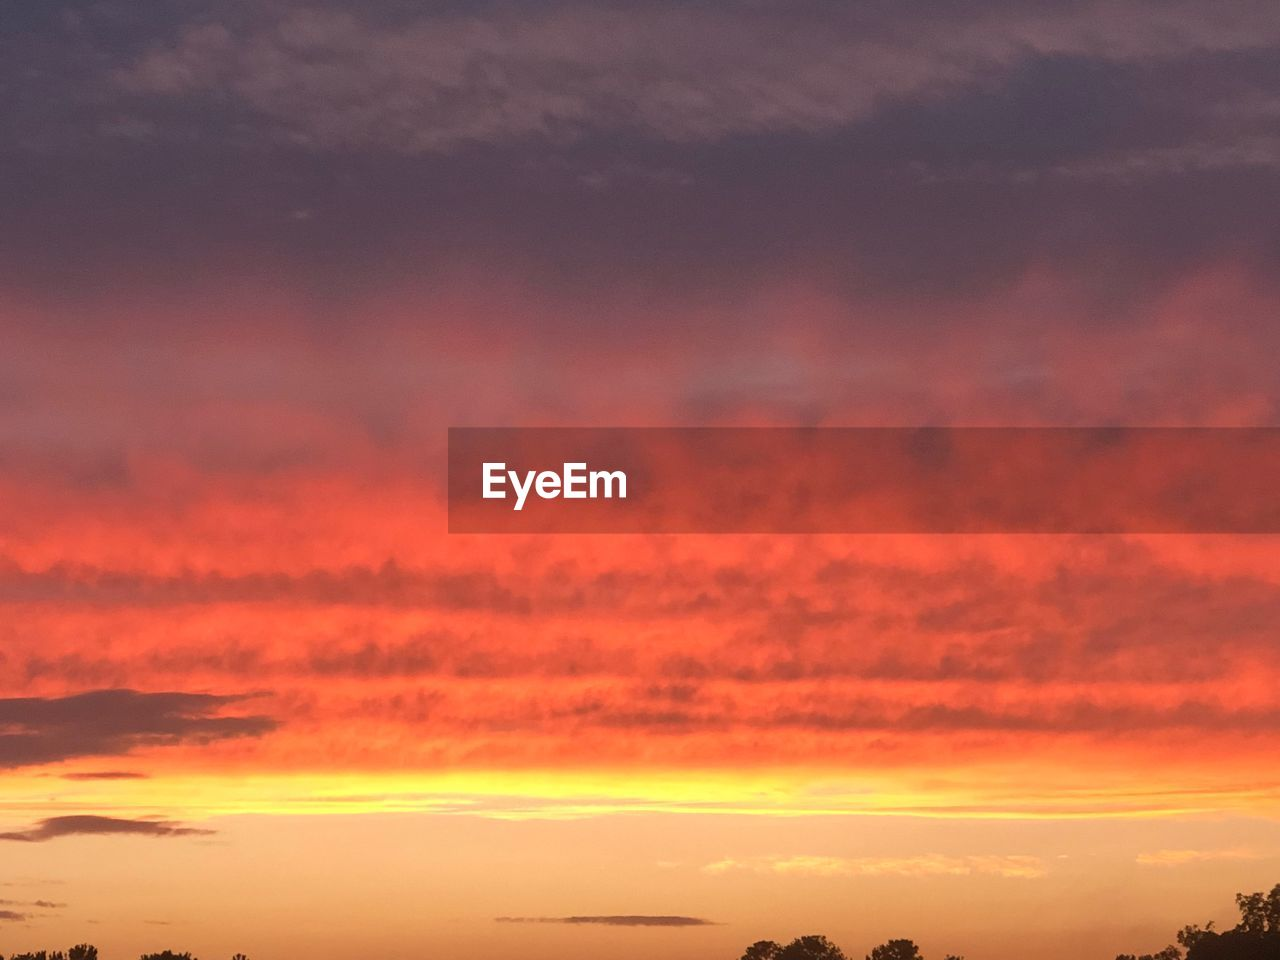 sunset, orange color, cloud - sky, beauty in nature, sky, scenics - nature, tranquility, tranquil scene, idyllic, nature, no people, dramatic sky, outdoors, red, environment, backgrounds, majestic, vibrant color, pink color, romantic sky, meteorology